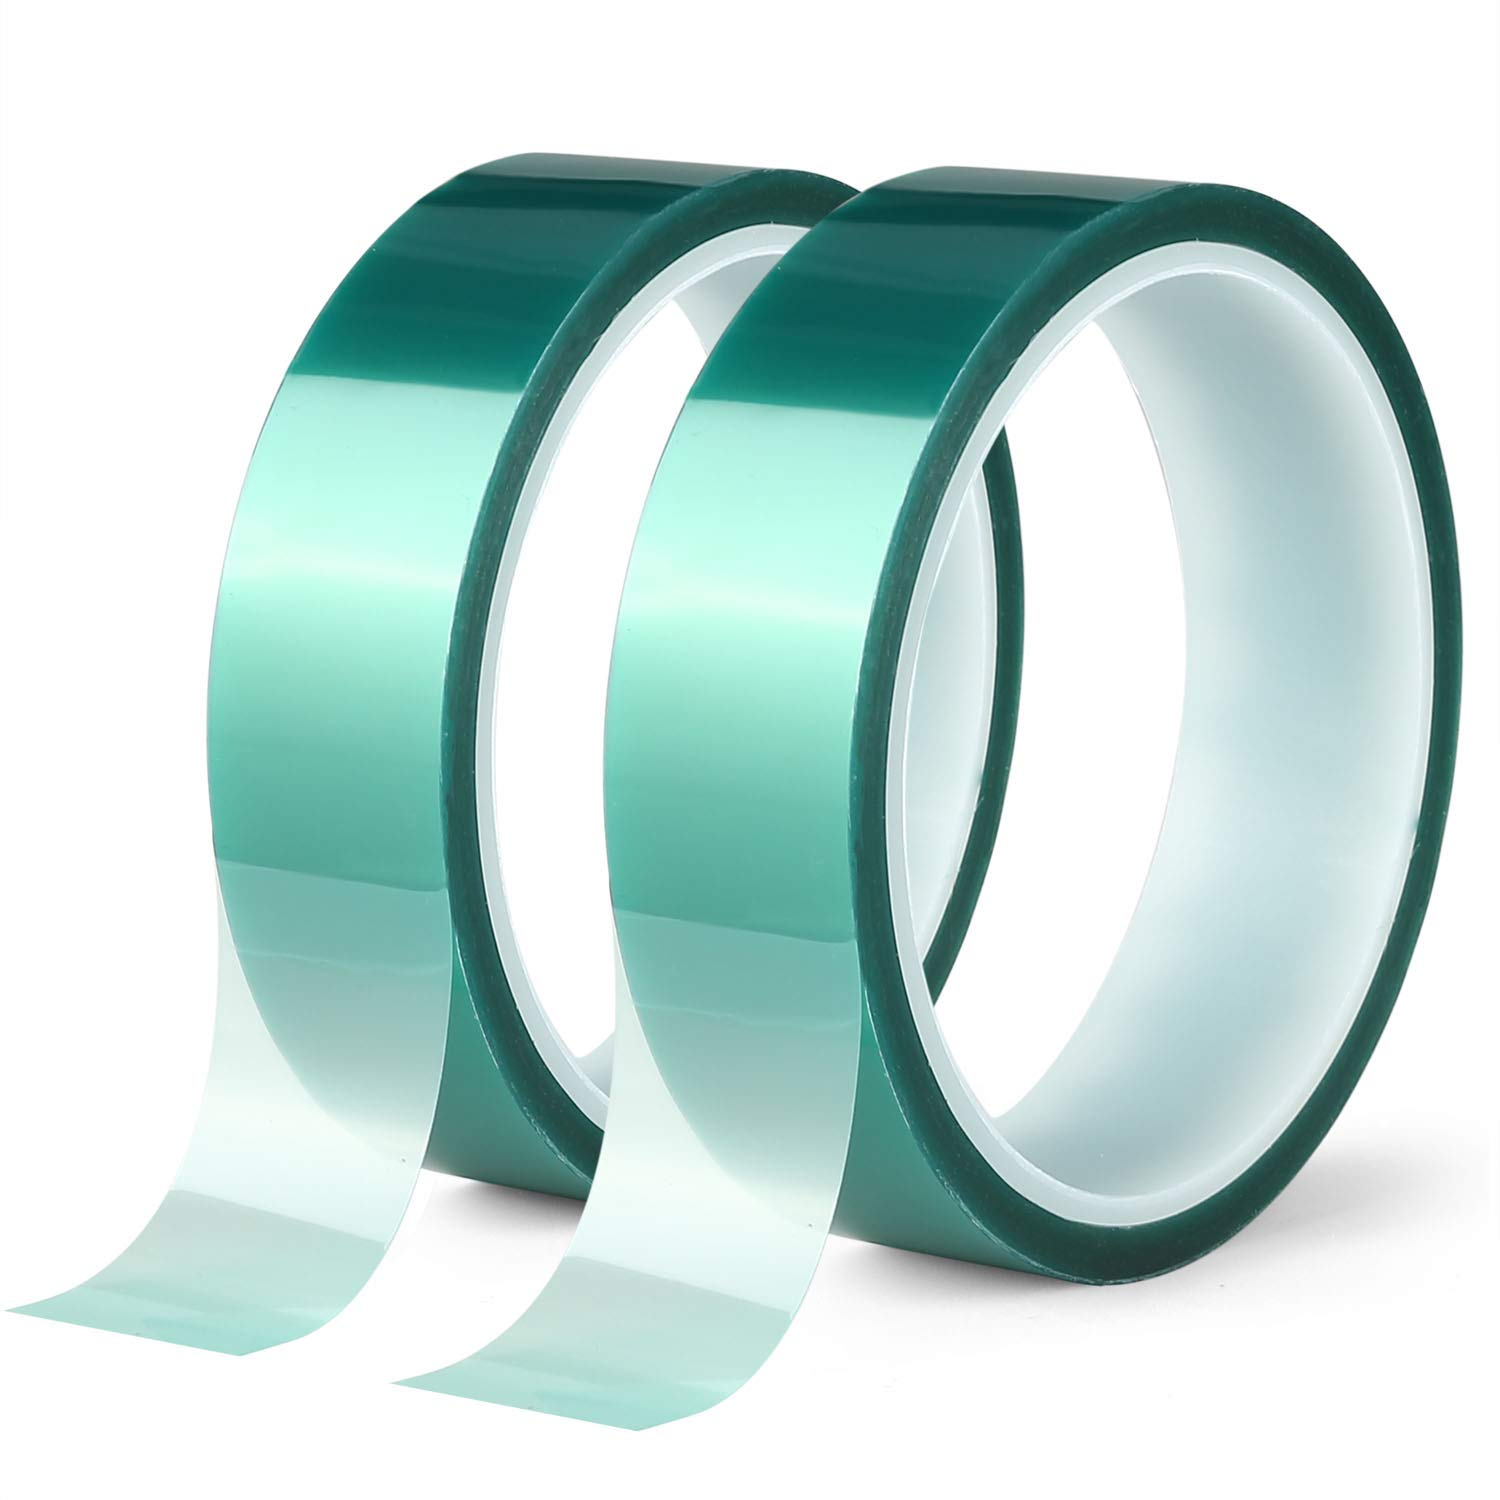 Powder Coating Circuit Boards Anodizing PET Tape with Silicone Adhesive Green,1//2 inches X 82 Feet Ideal for Painting 3 Roll Polyester High Temperature Masking Tape